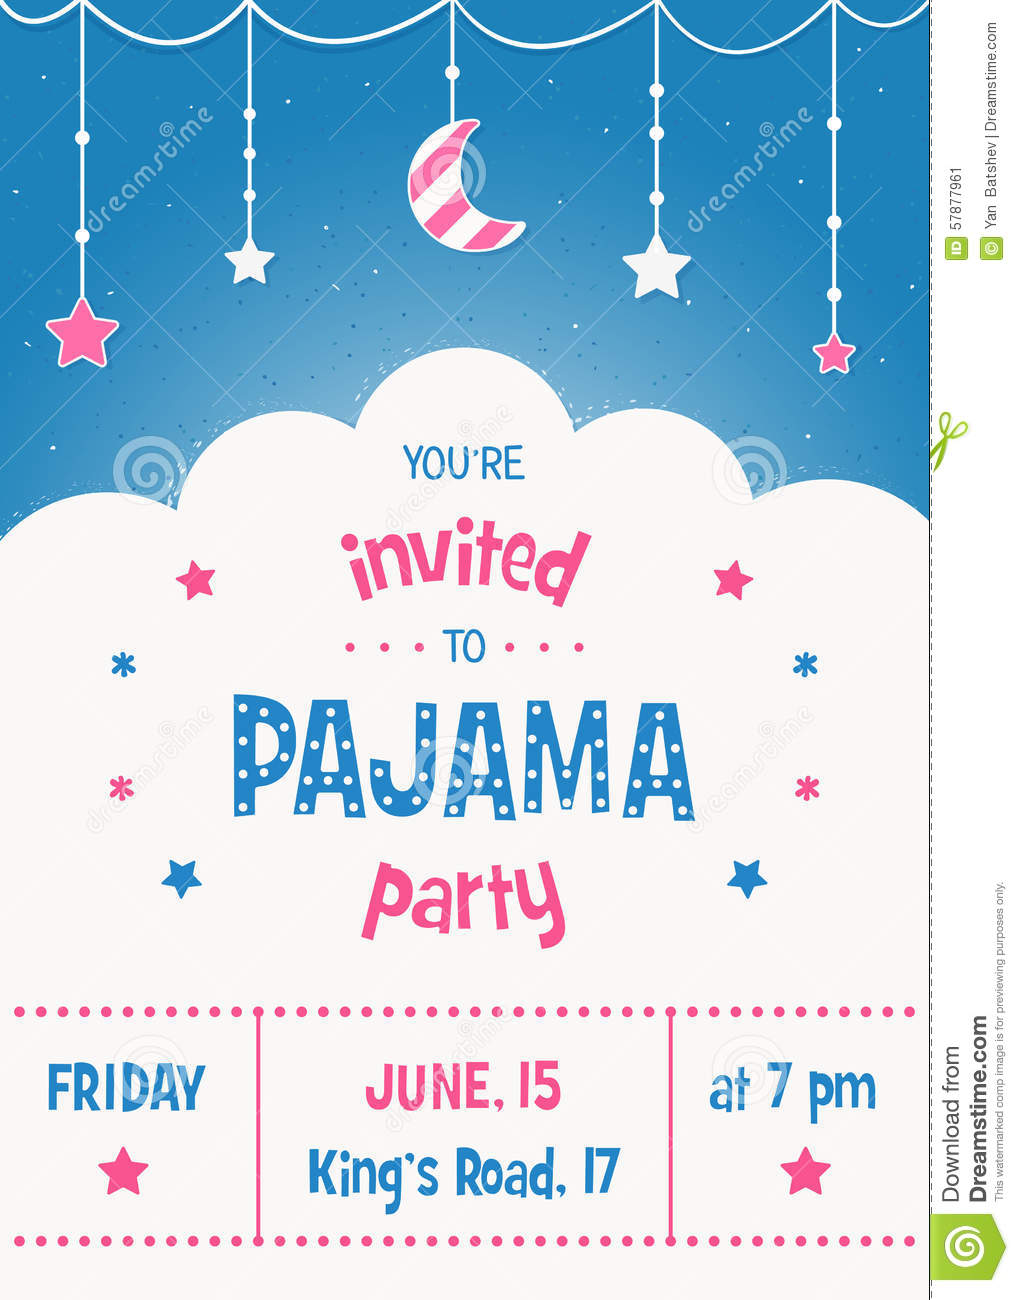 Pajama Party Invitation Card Template With Stars Moon And Clouds – Pajama Party Invites